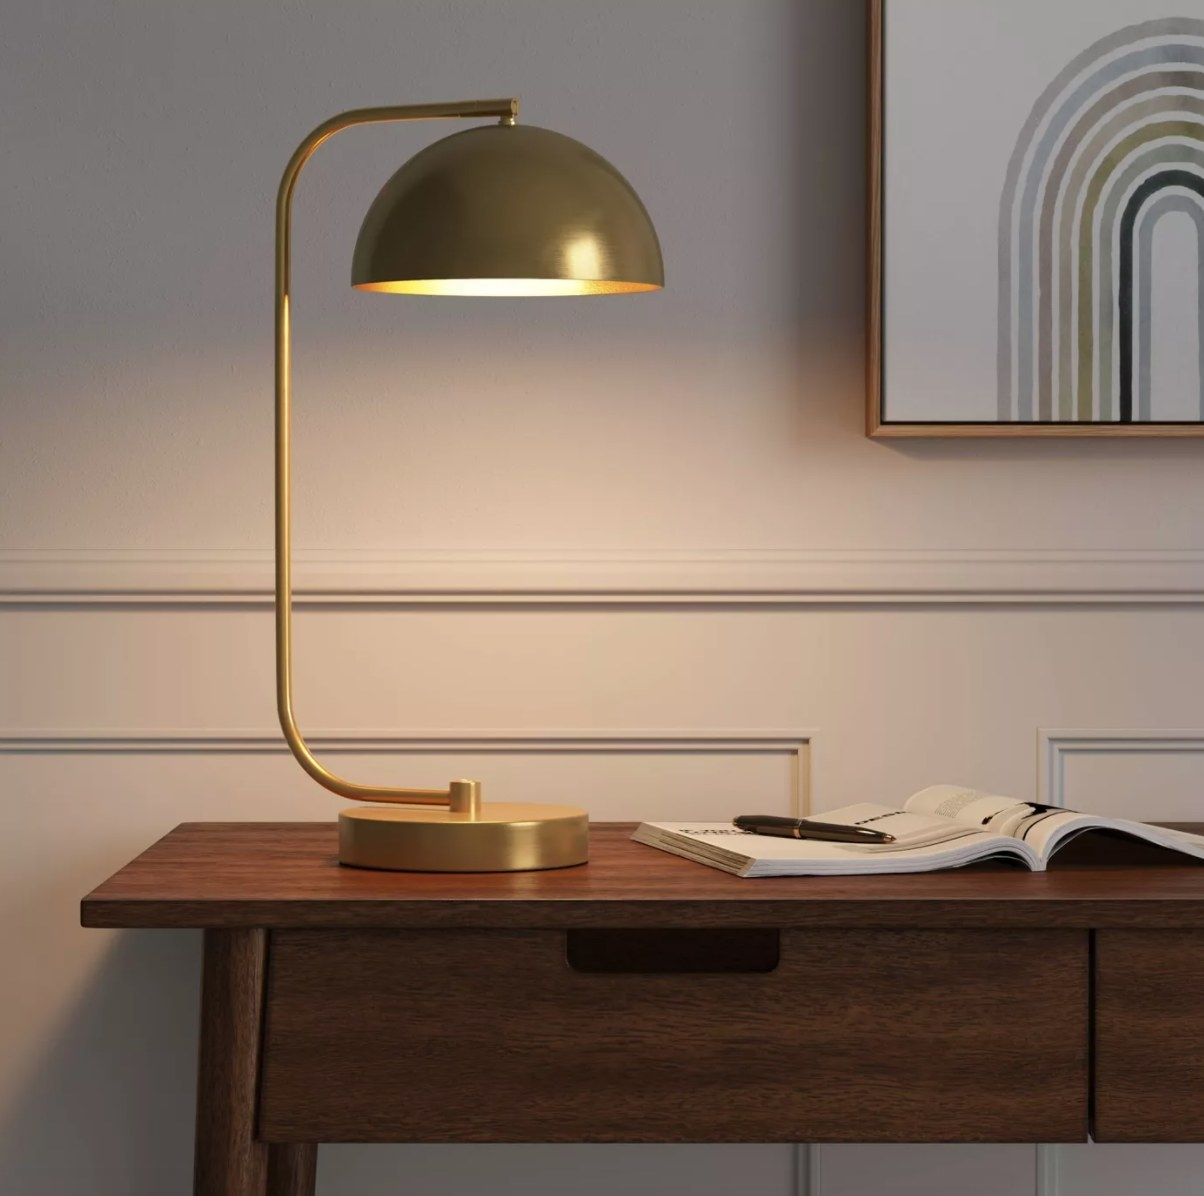 A brass-colored table lamp with a round shade